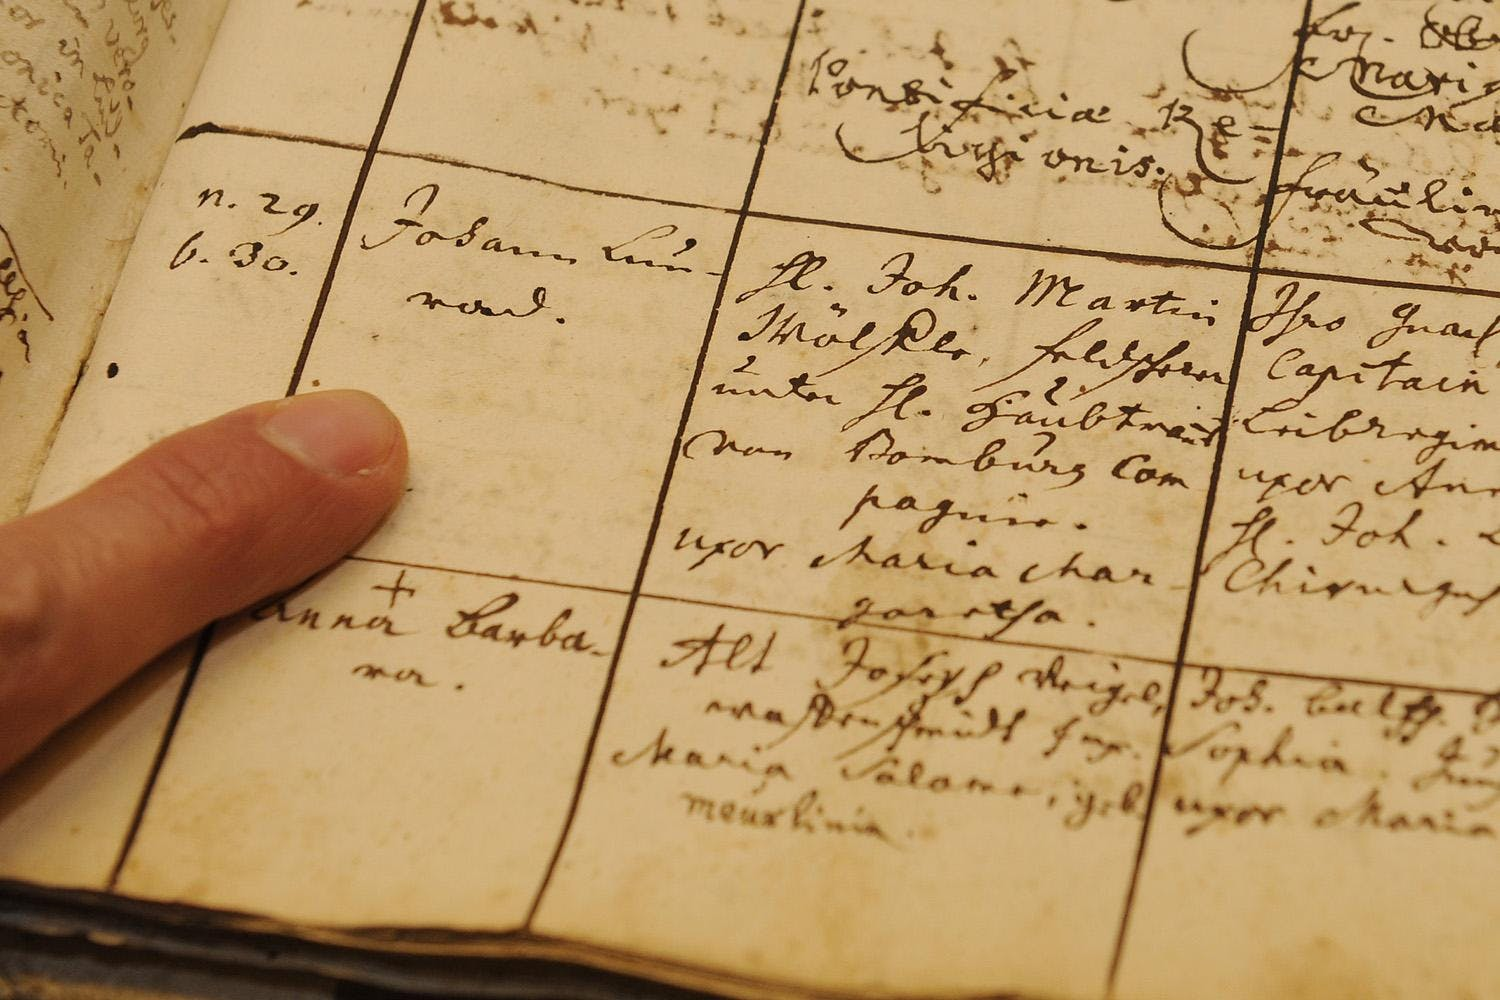 RESEARCHING YOUR FAMILY'S STORY AND HISTORY